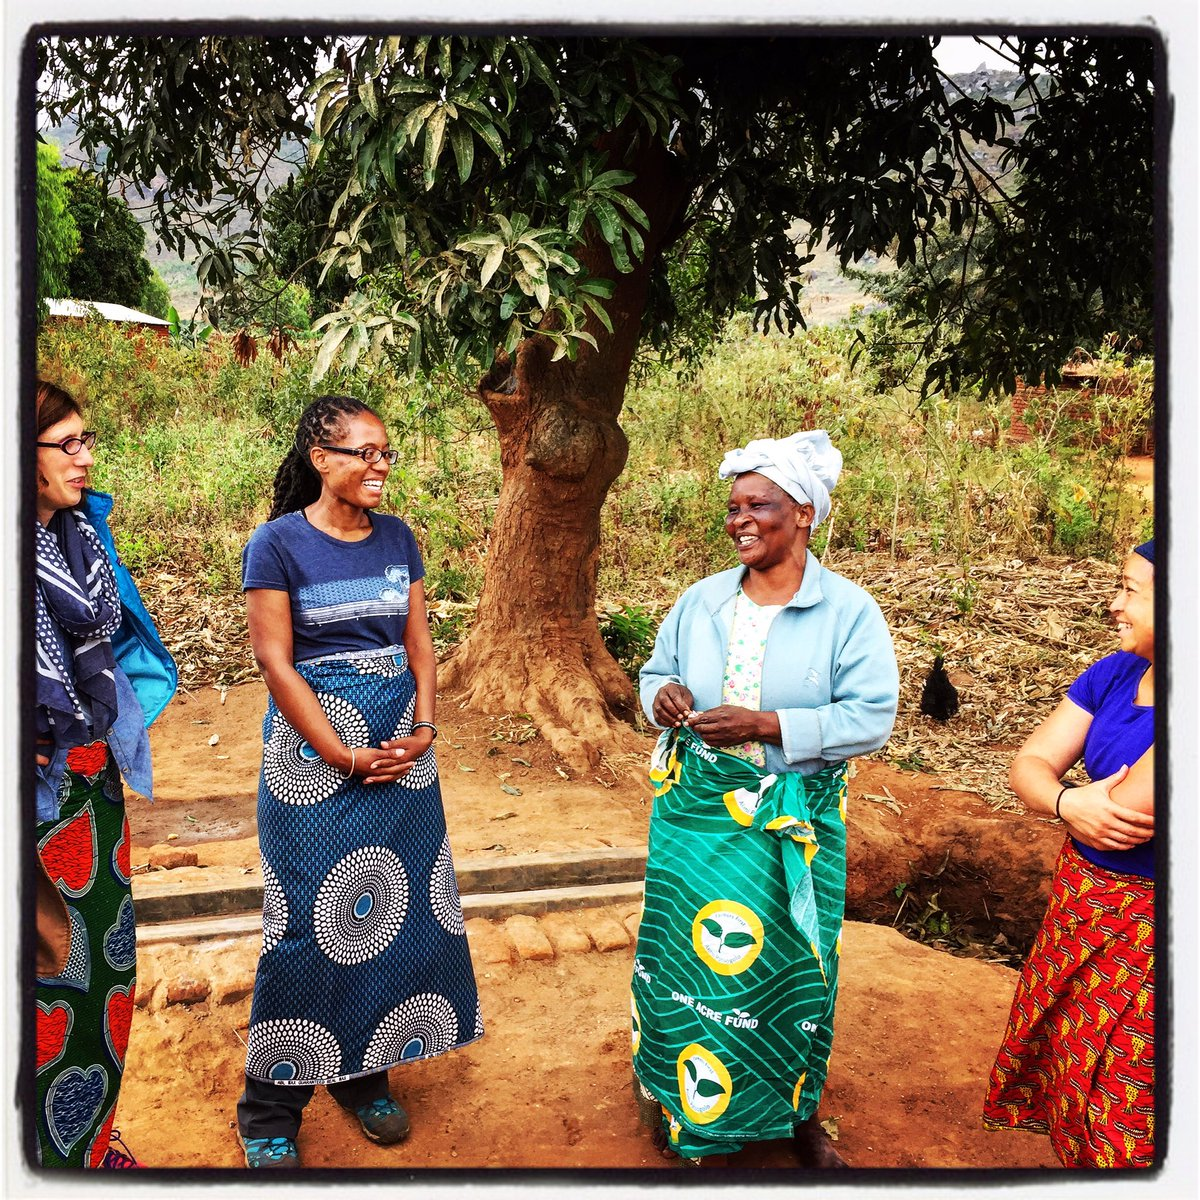 Q&amp;A with the chief of Saiti Village, beside the new #borehole. #Malawi #Africa #crowdfunding #nonprofit #startup #local #water #travel<br>http://pic.twitter.com/cw9NgcVQL0